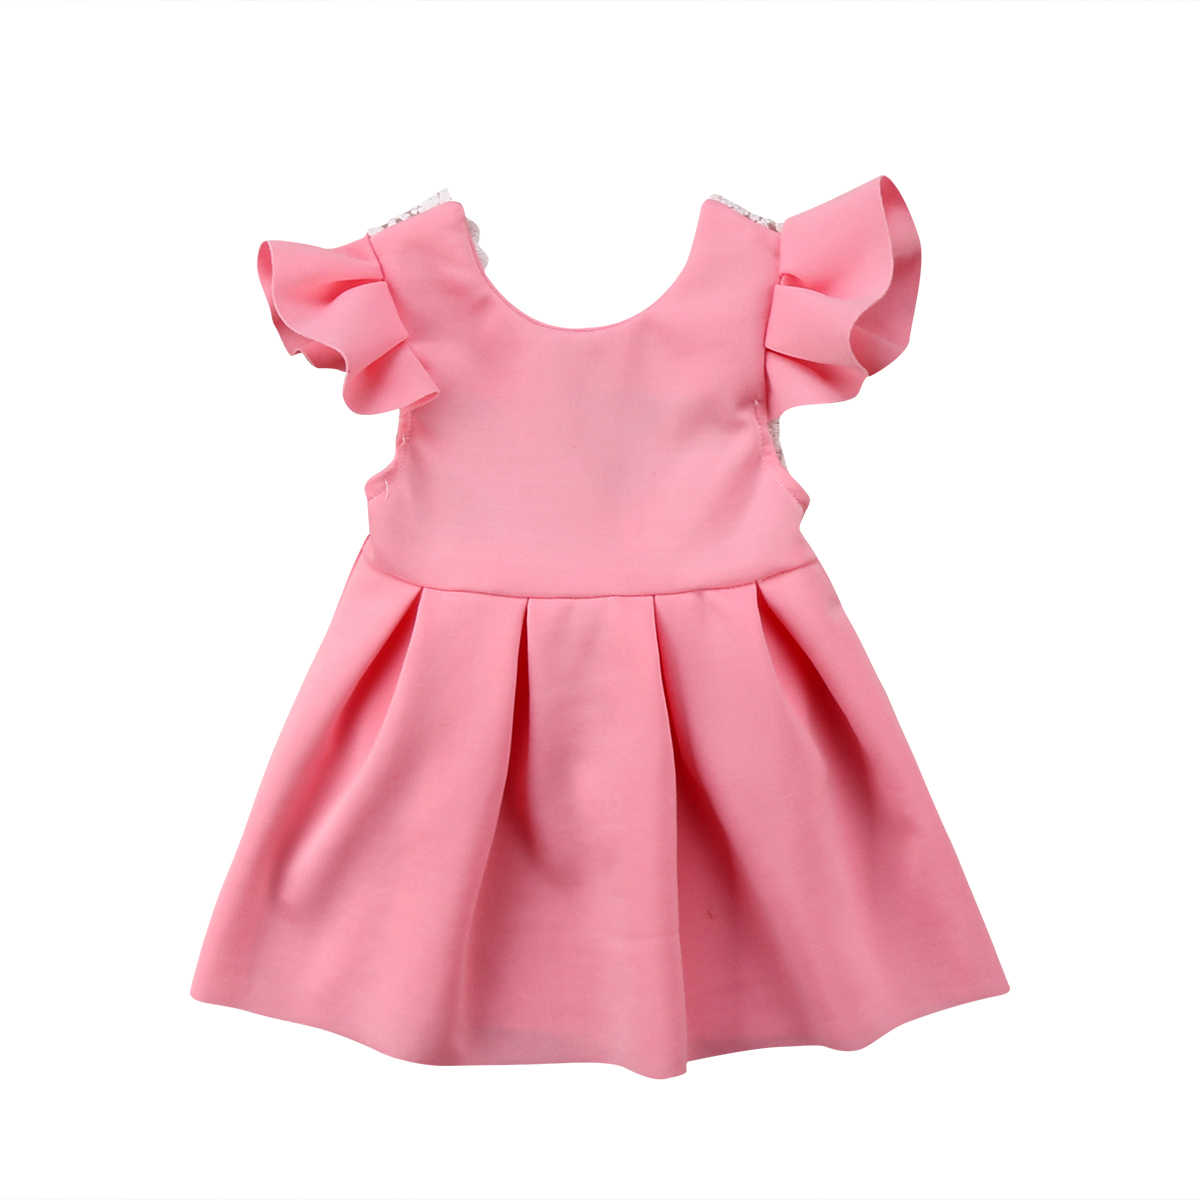 094b7e7e8 Detail Feedback Questions about FOCUSNORM Infant Baby Girl Toddler ...